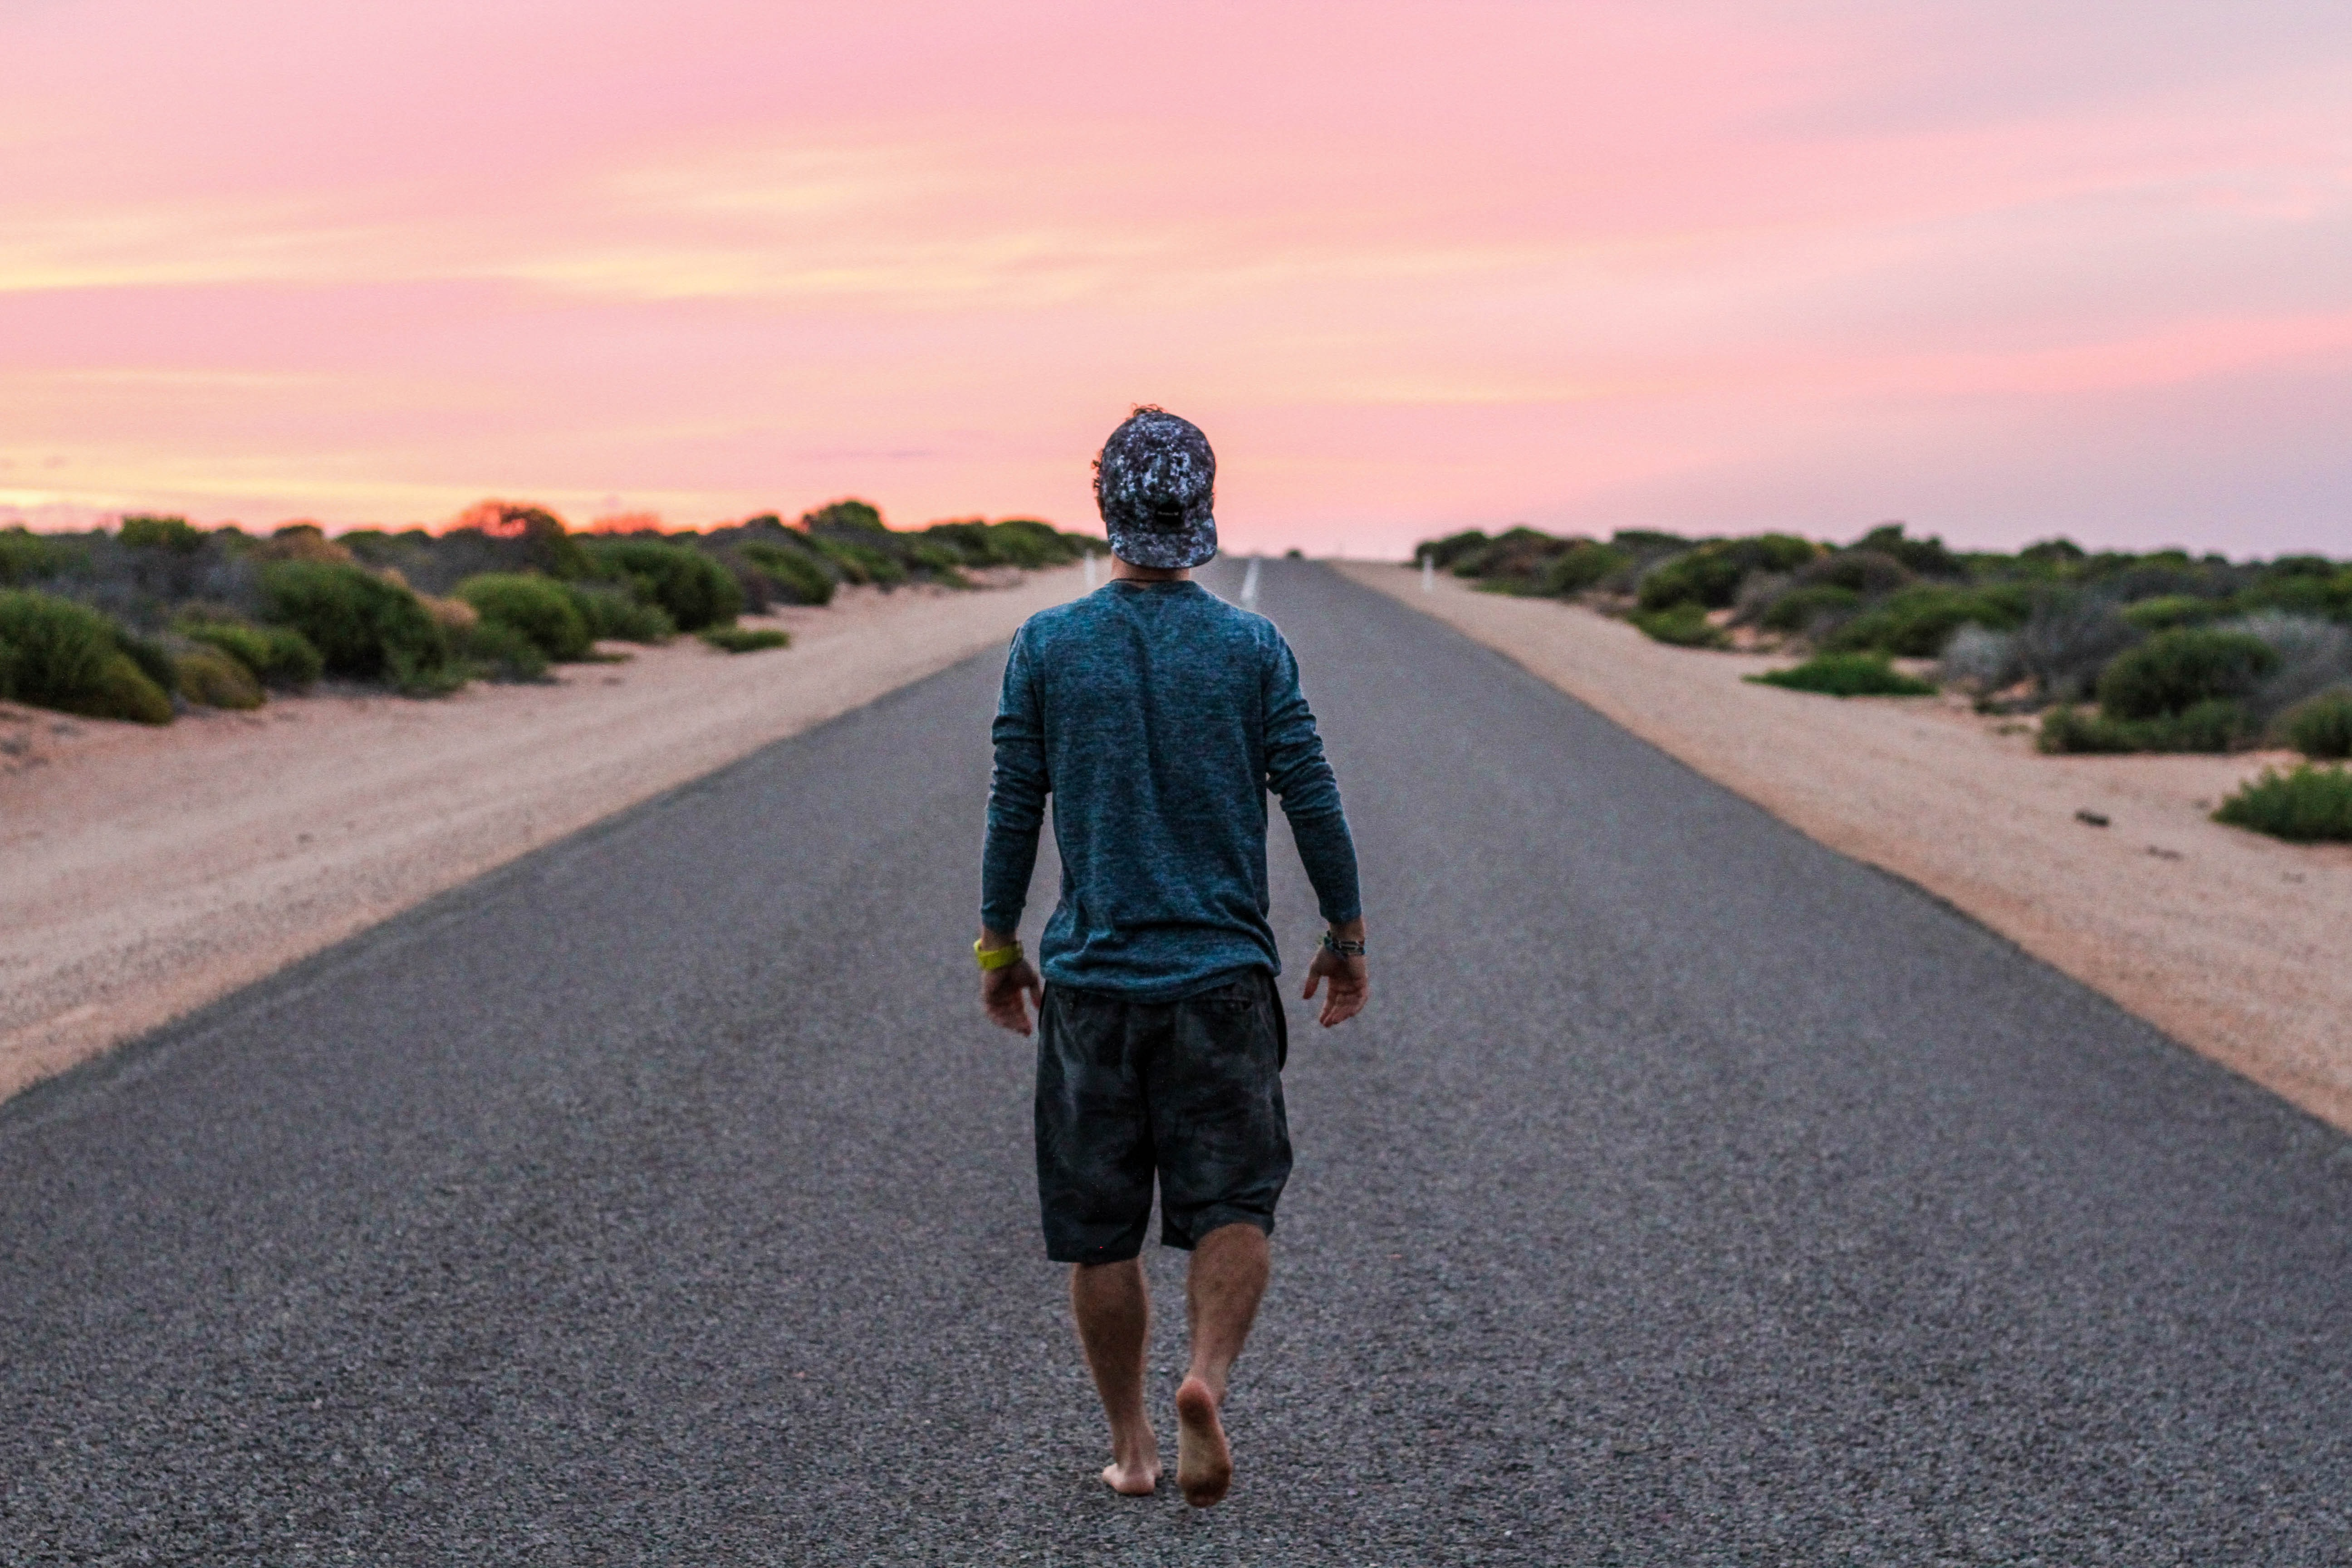 A barefoot man in a baseball hat walking on an empty asphalt road during sunset